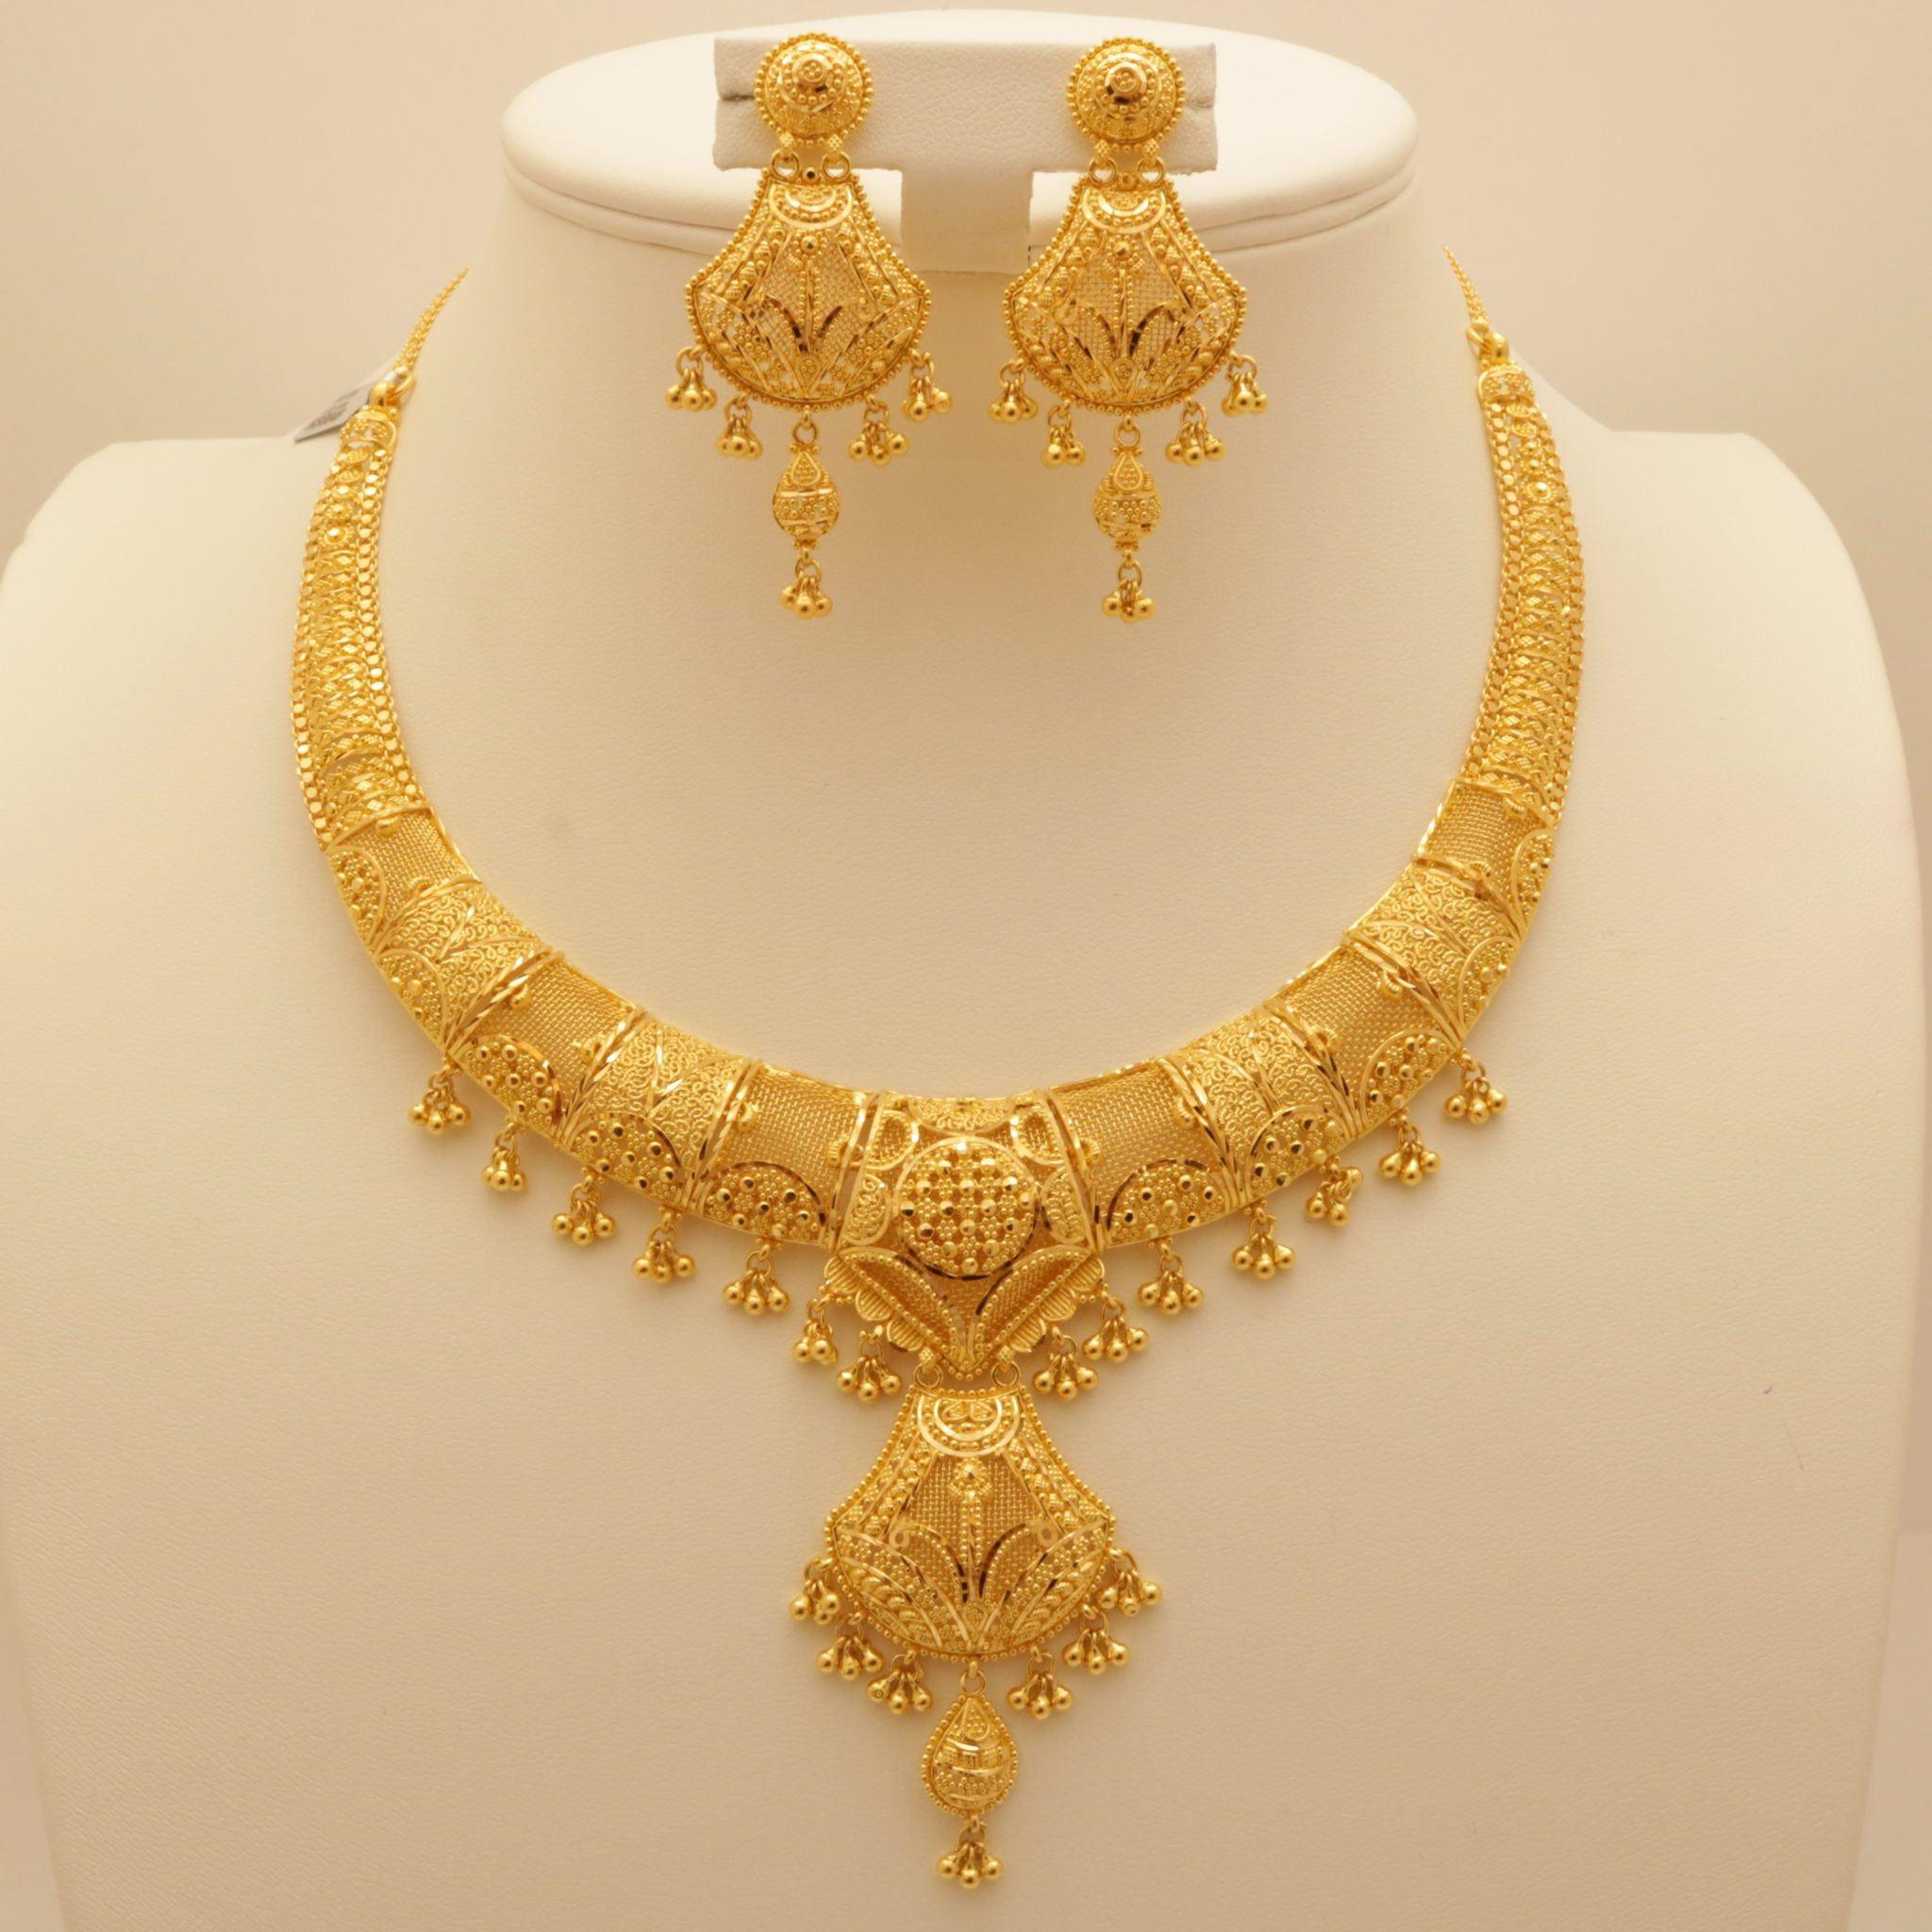 in its set xhjodsk indian bingefashion necklace beauty own jewelry gold diamond